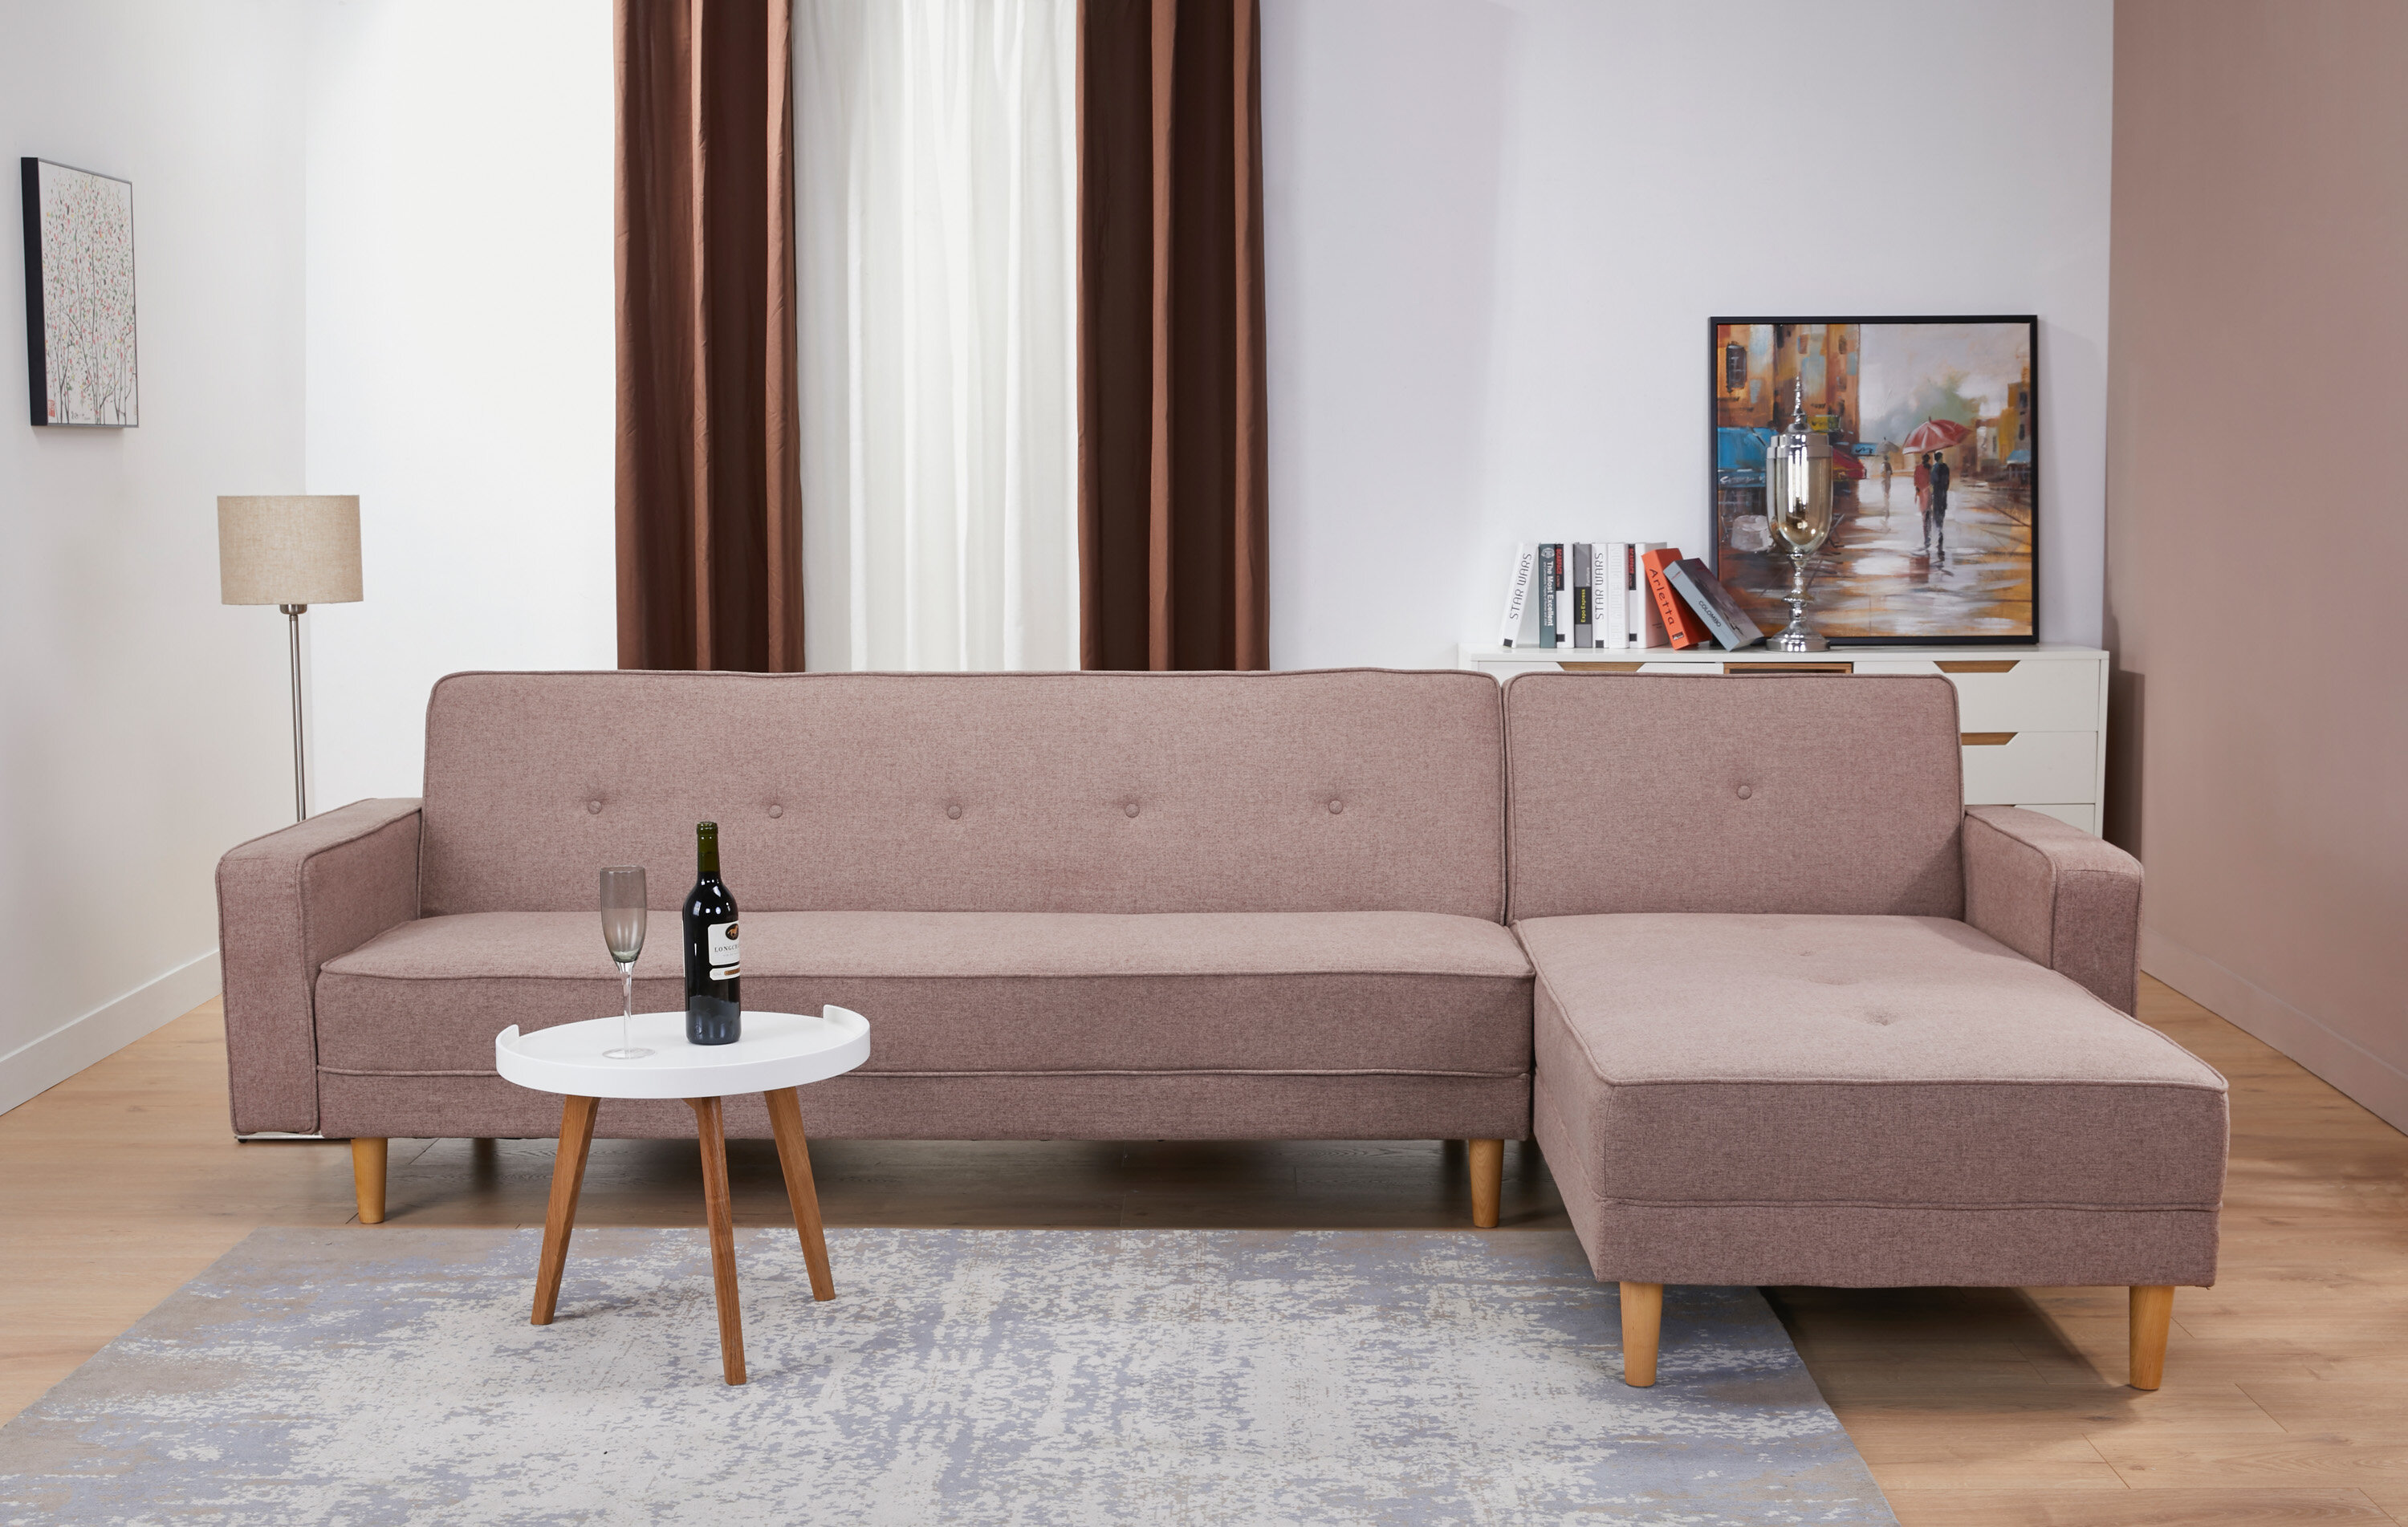 Union rustic lawrence hill convertible reclining sectional wayfair